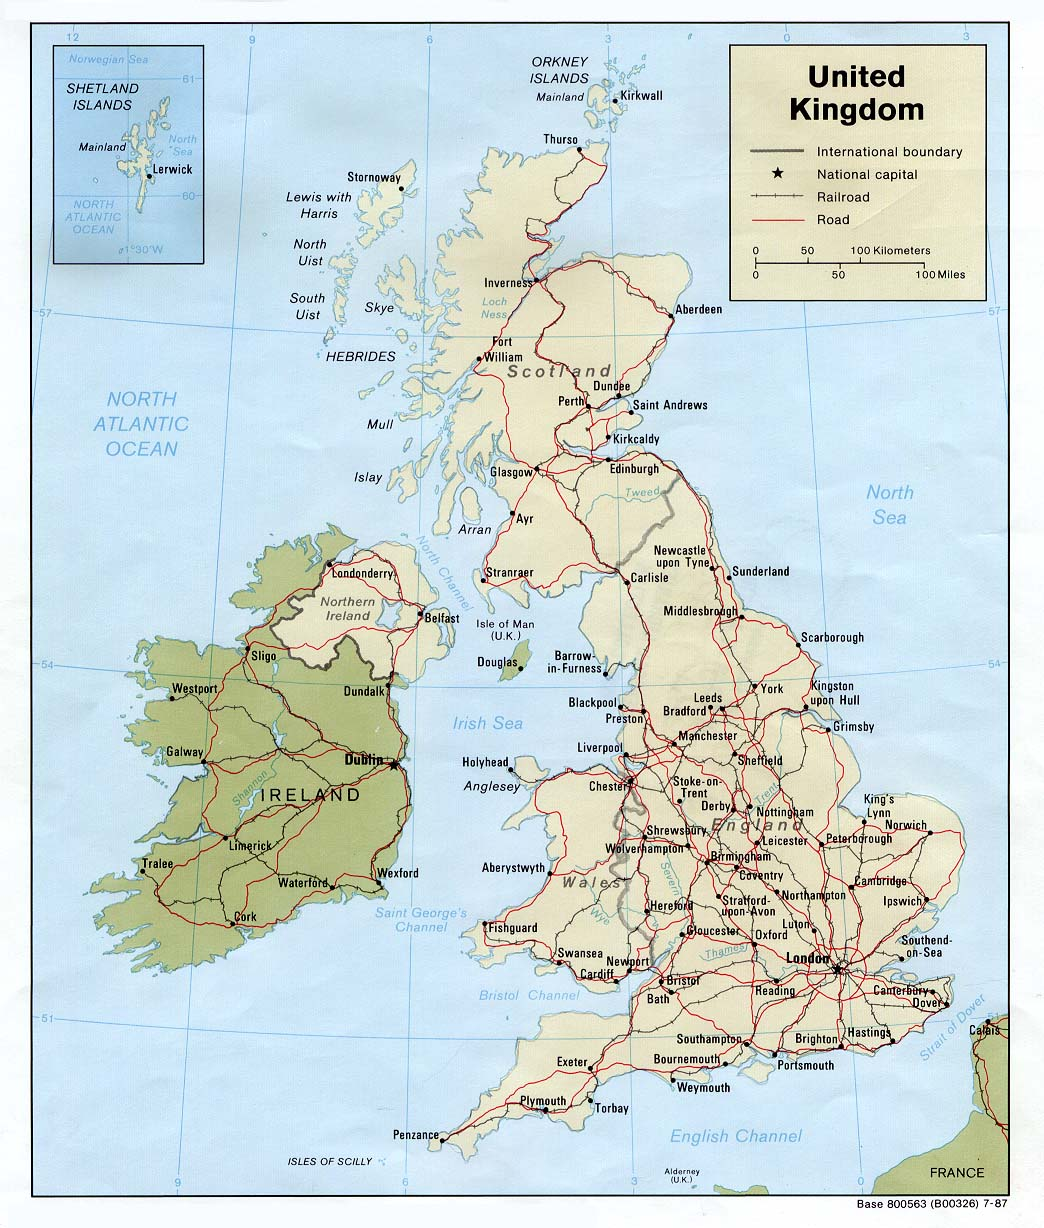 photo relating to Printable Map of Uk and Ireland called United Kingdom Maps - Perry-Castañeda Map Variety - UT